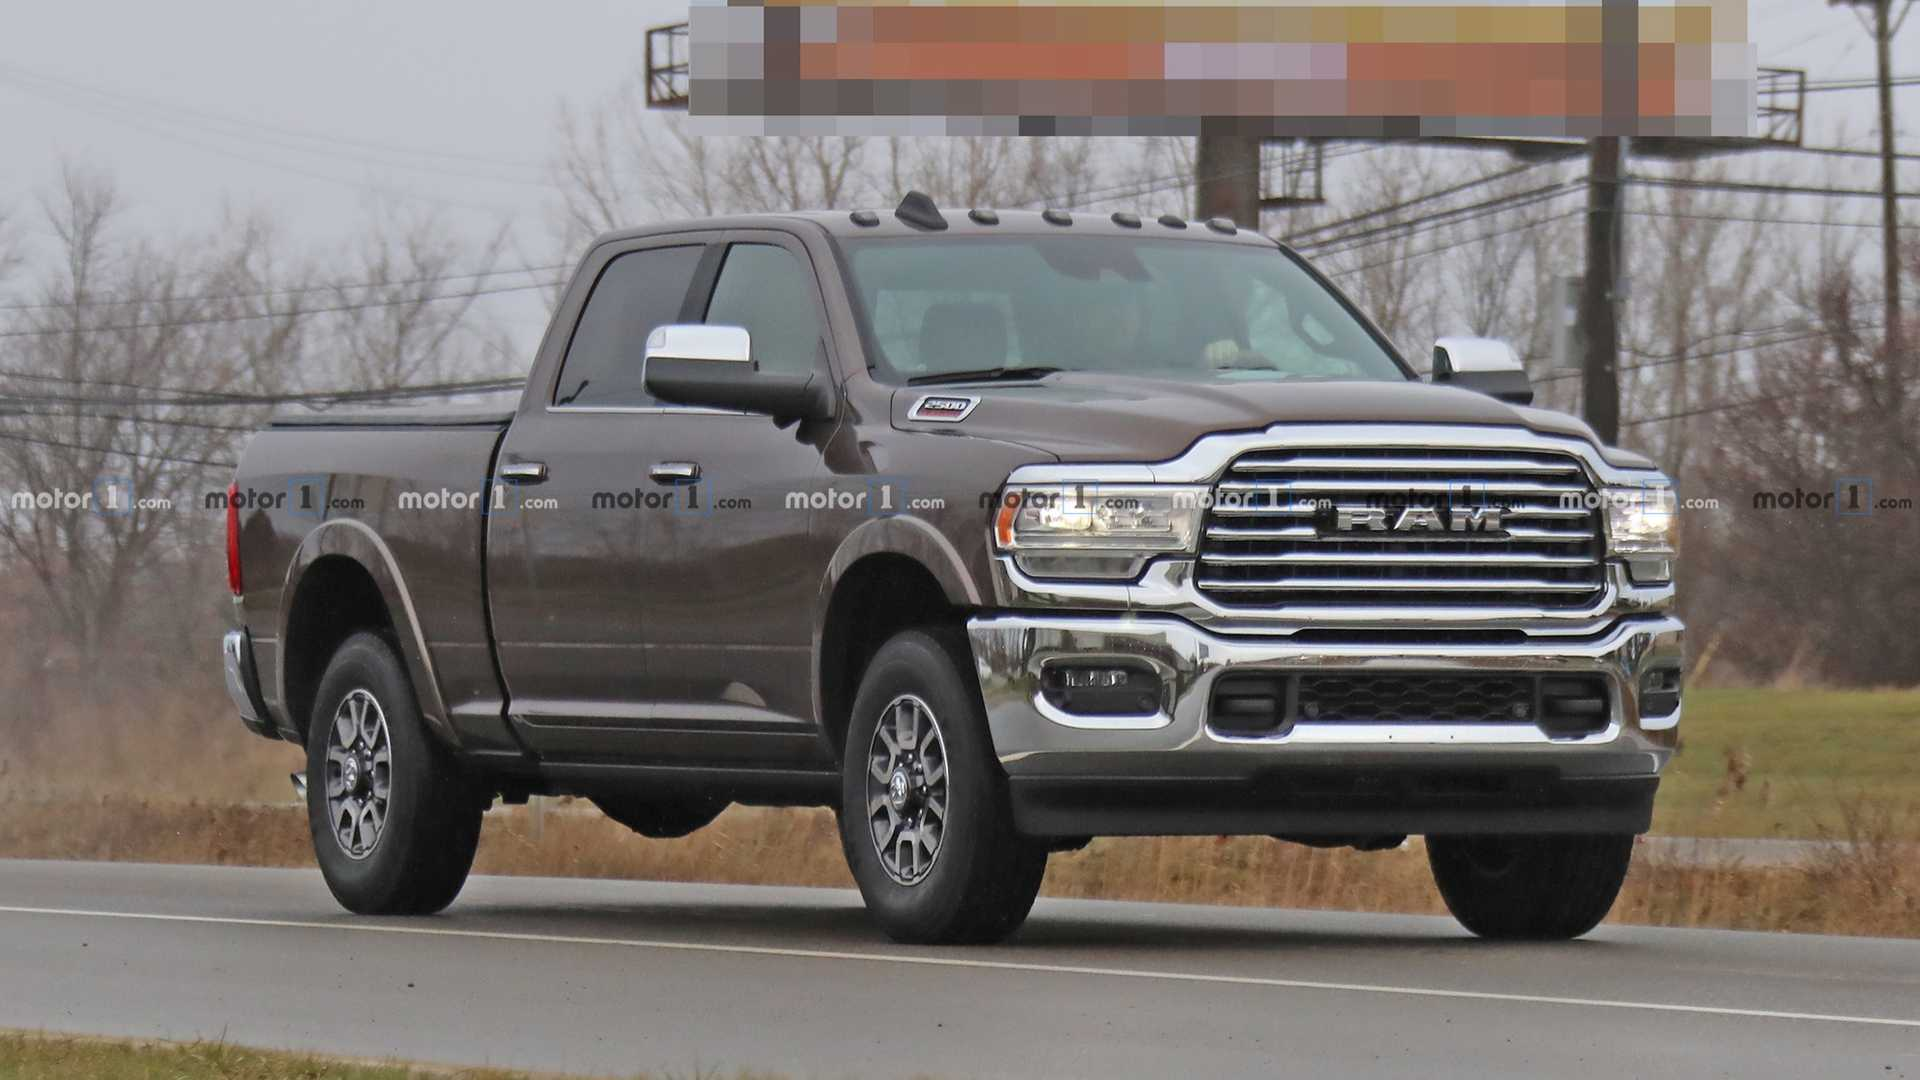 91 Great 2020 Dodge Ram Limited History with 2020 Dodge Ram Limited